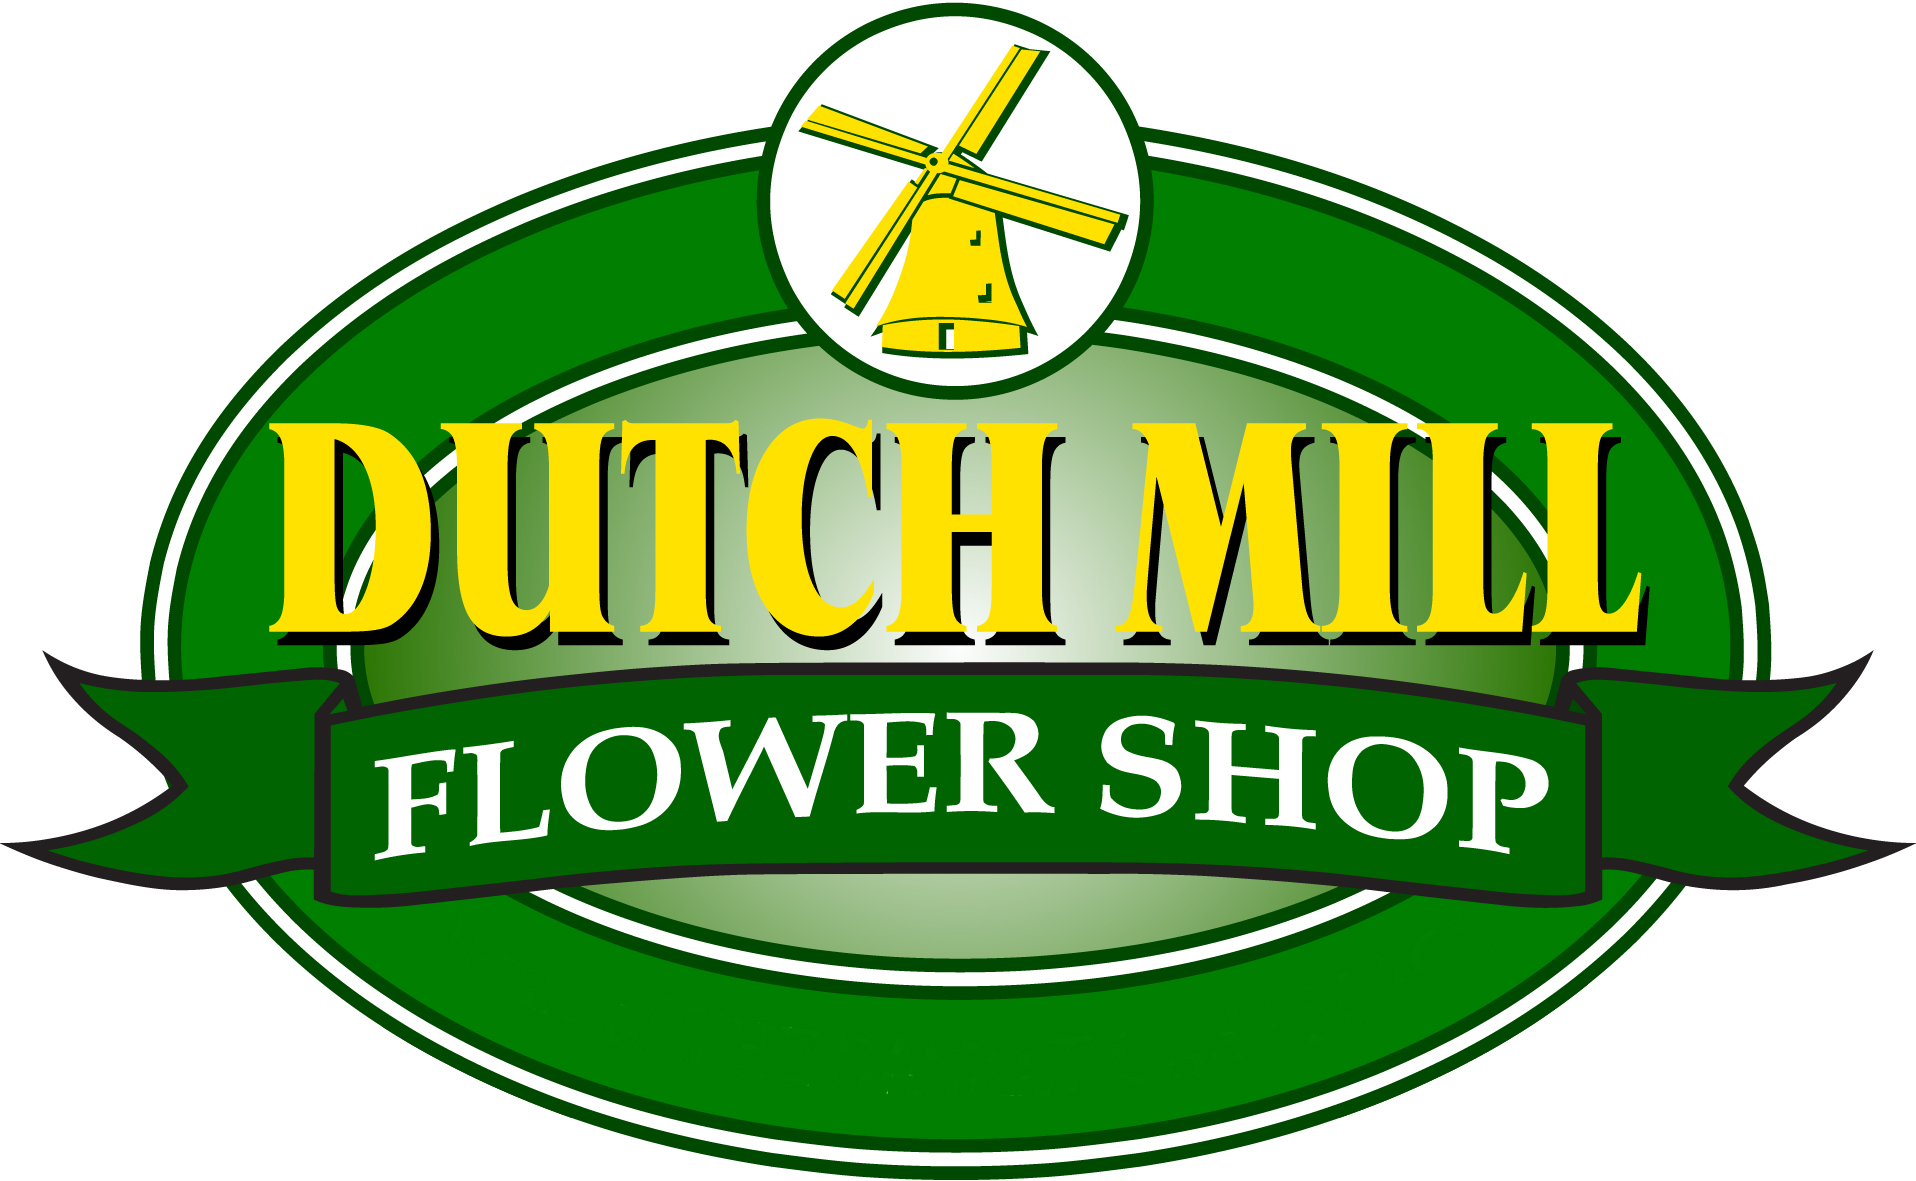 A Dutch Mill Flower Shop